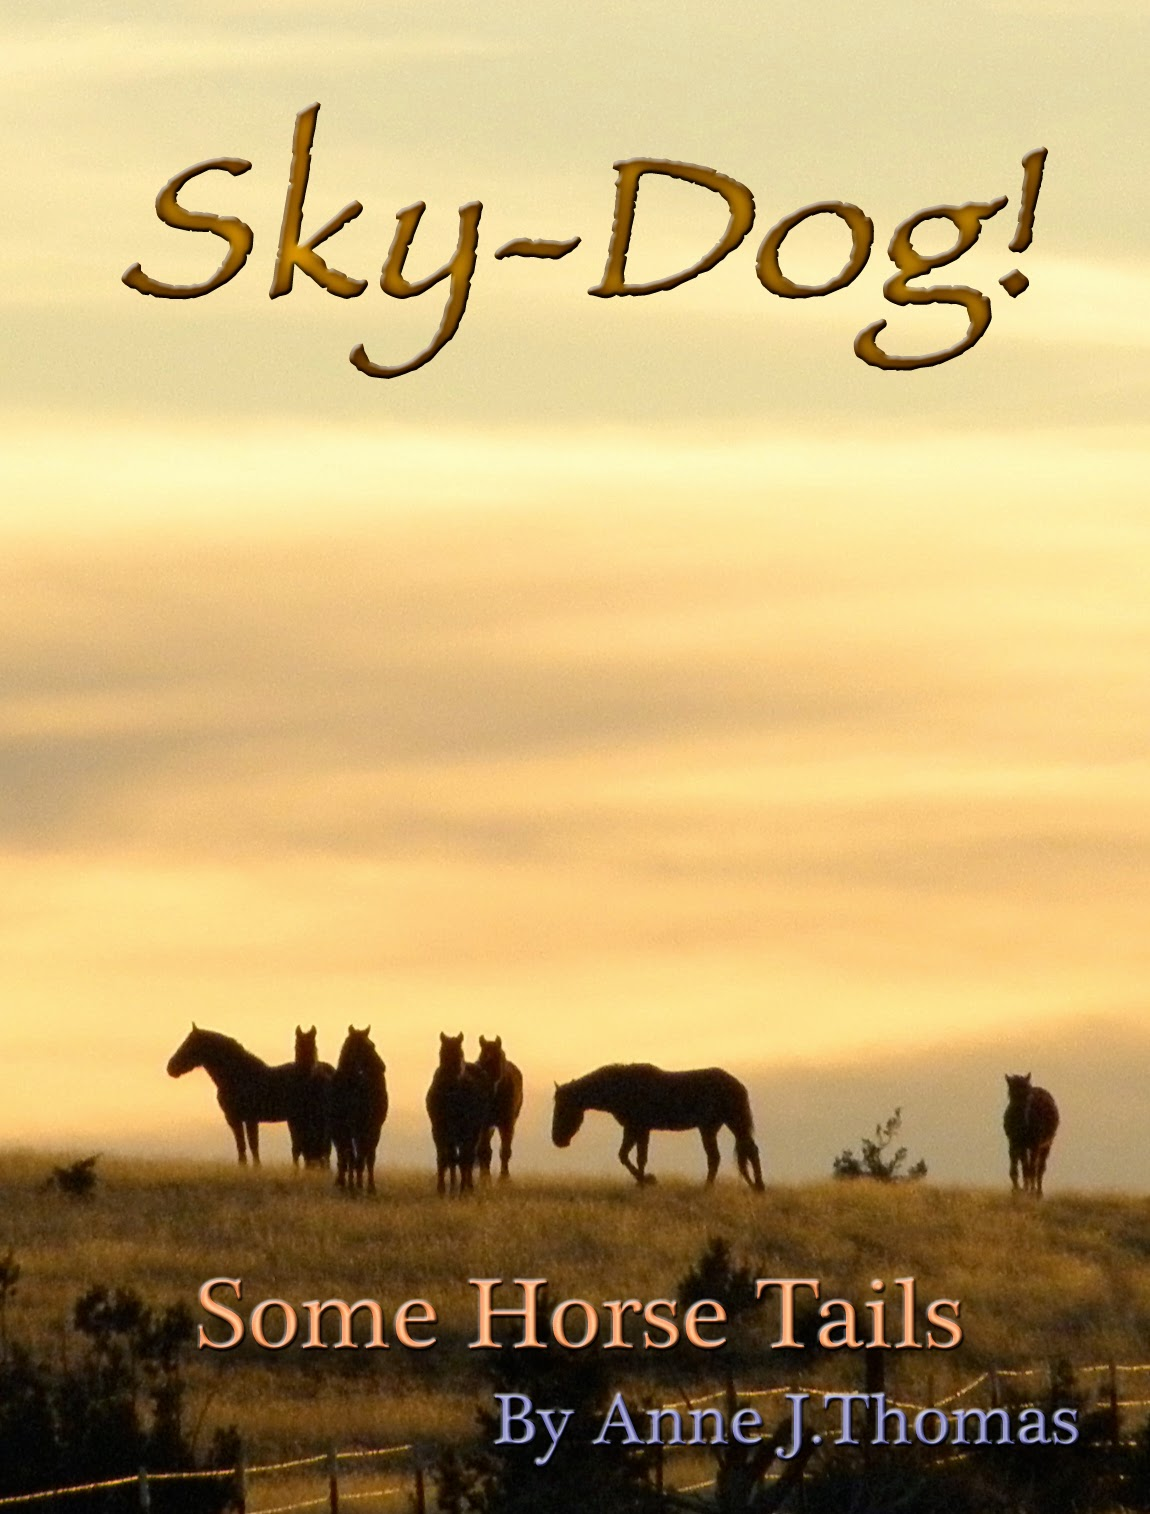 Sky-Dog! ~ Some Horse Tails